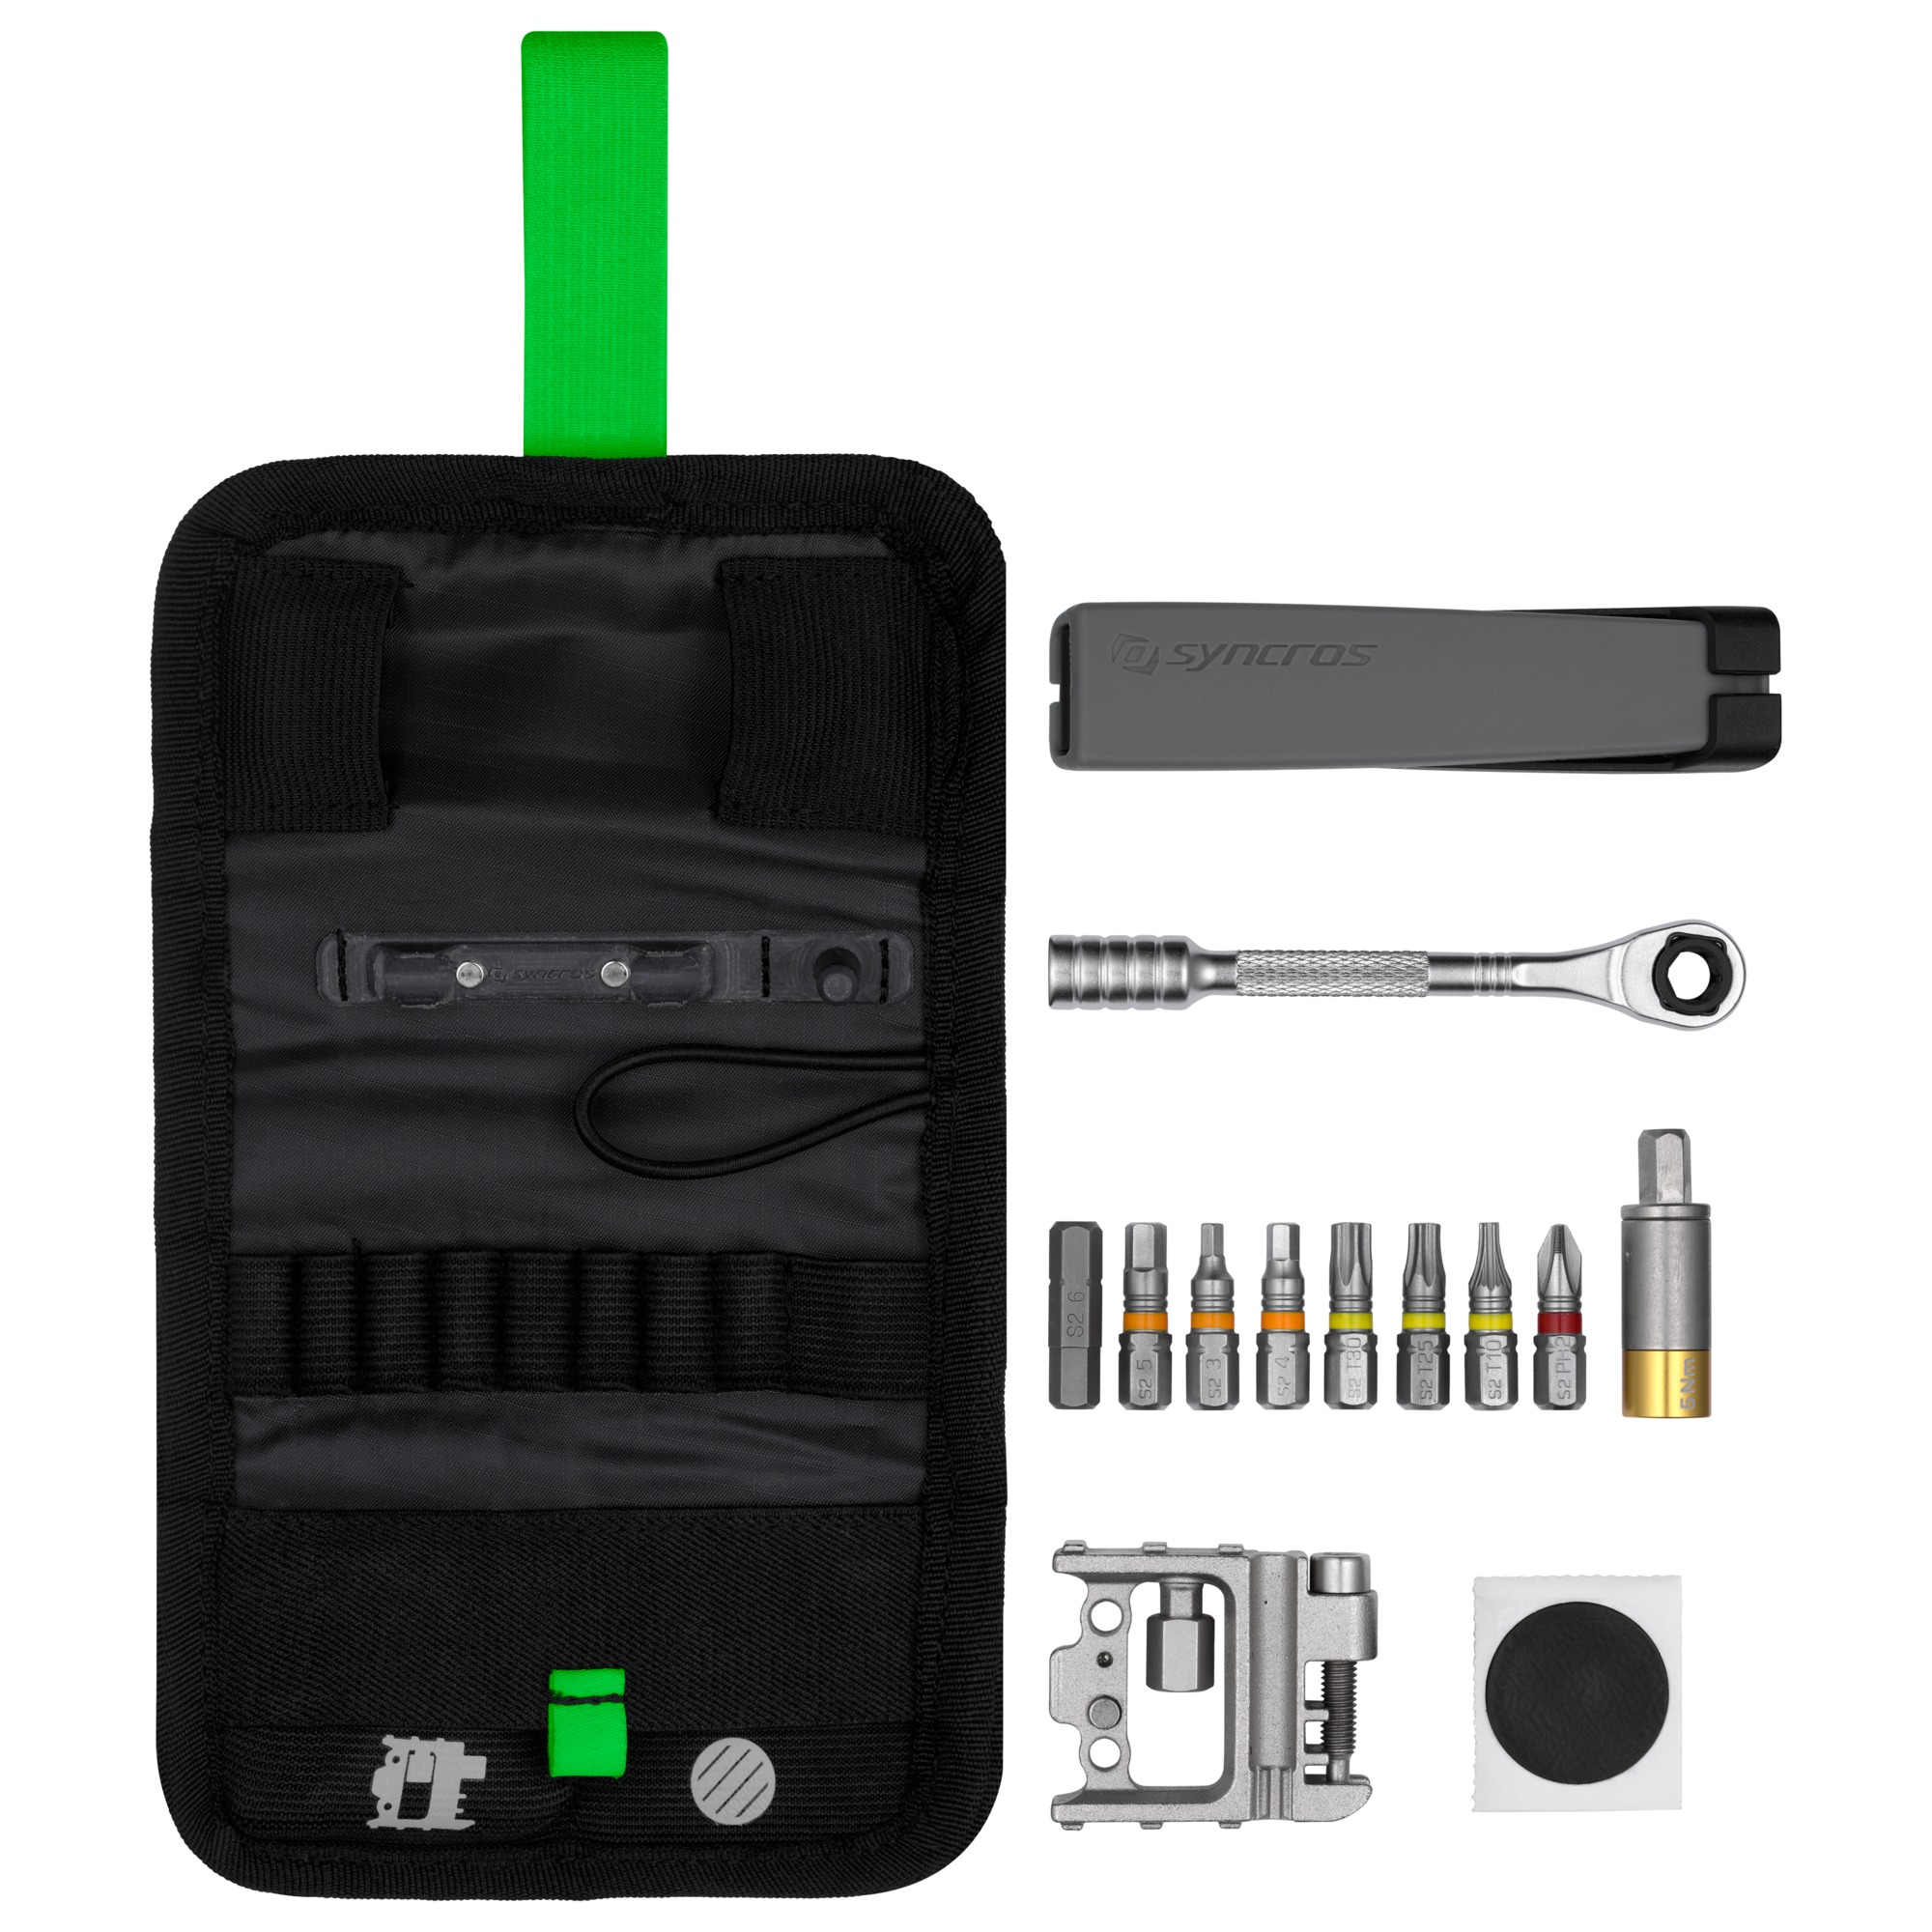 Syncros Guide Multi-Tool Kit